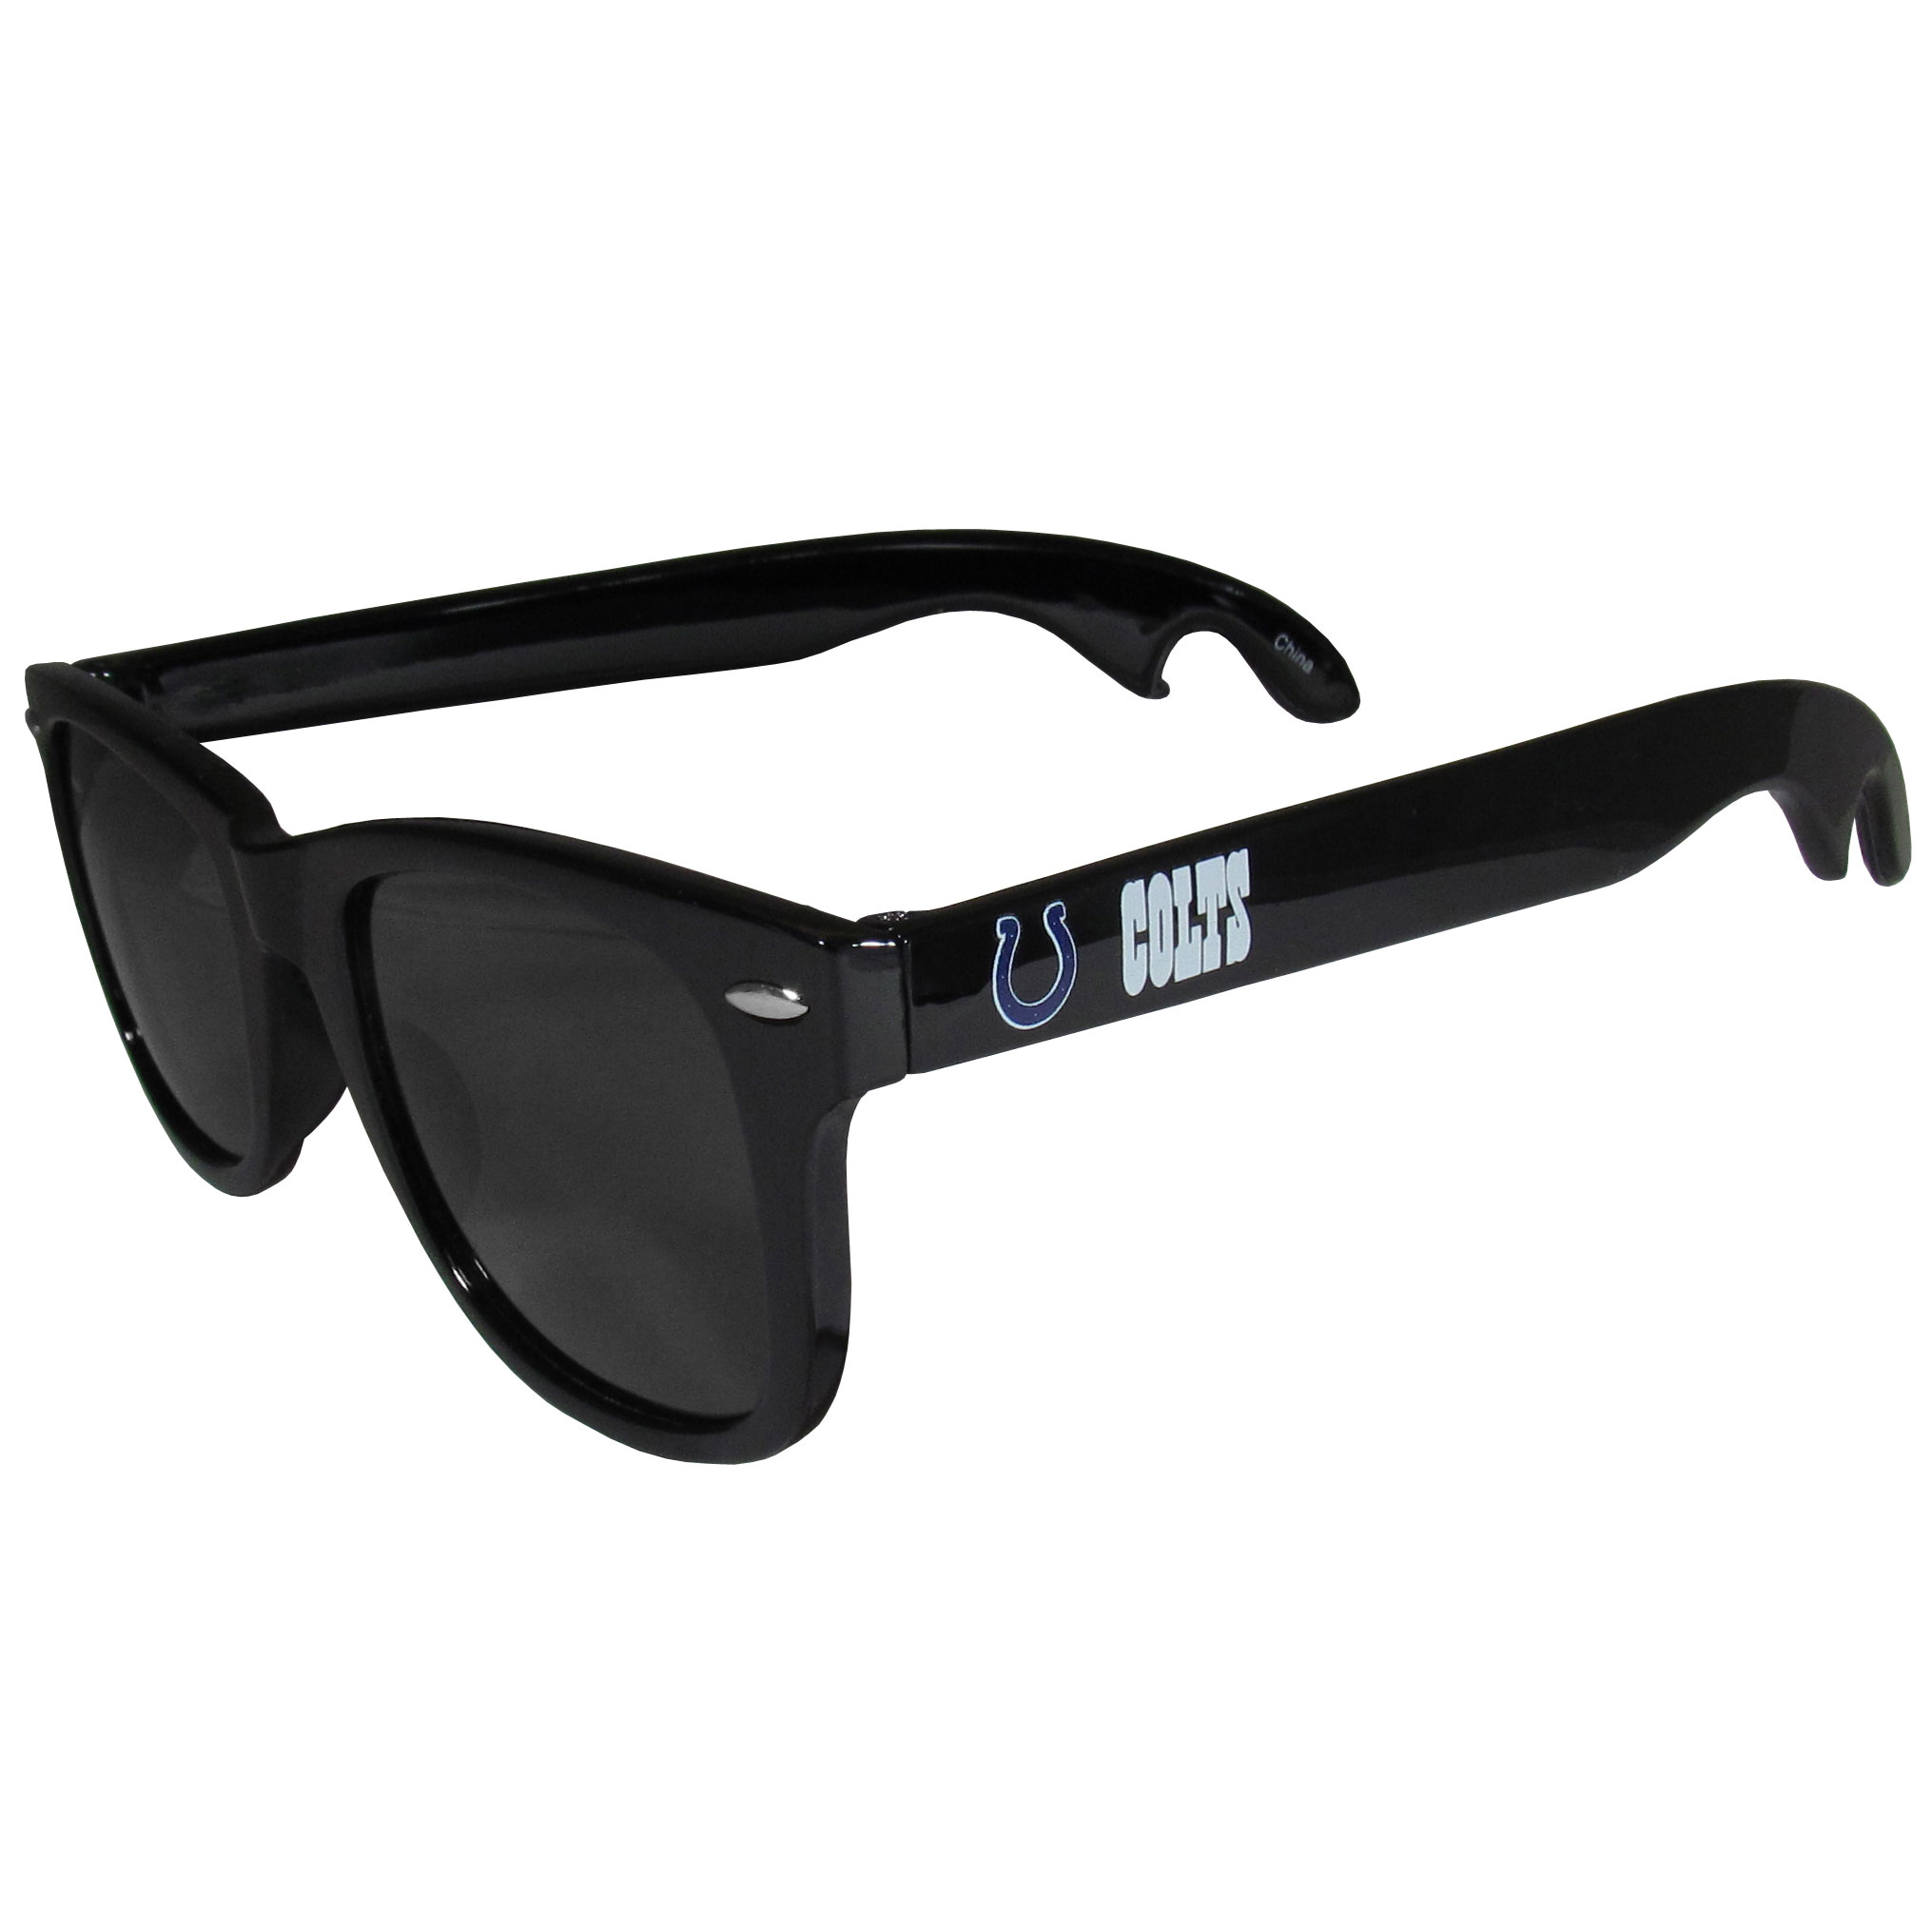 Indianapolis Colts Beachfarer Bottle Opener Sunglasses - Seriously, these sunglasses open bottles! Keep the party going with these amazing Indianapolis Colts bottle opener sunglasses. The stylish retro frames feature team designs on the arms and functional bottle openers on the end of the arms. Whether you are at the beach or having a backyard BBQ on game day, these shades will keep your eyes protected with 100% UVA/UVB protection and keep you hydrated with the handy bottle opener arms.